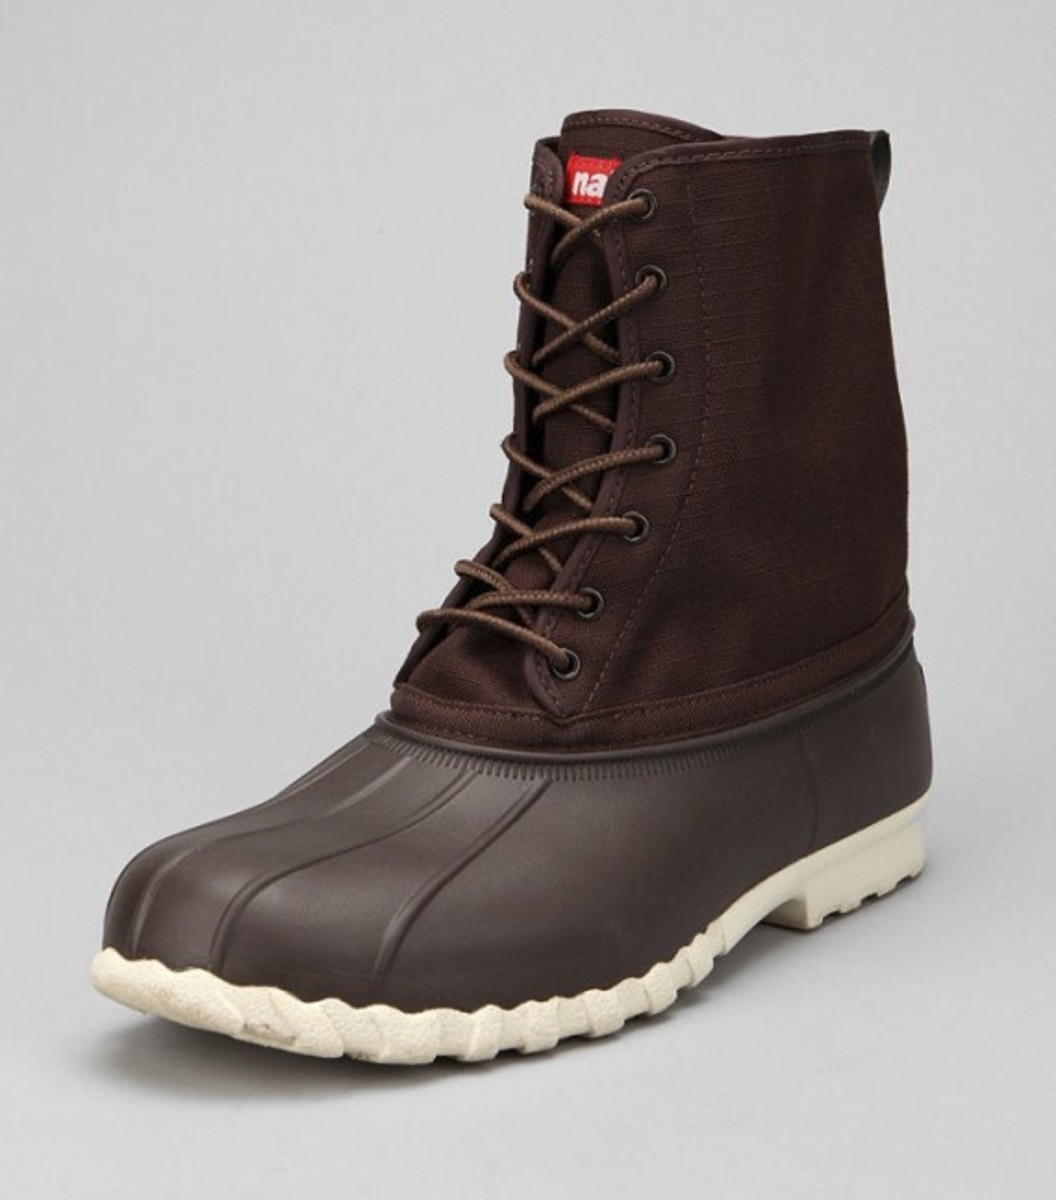 native-jimmy-duck-boots-brown-02